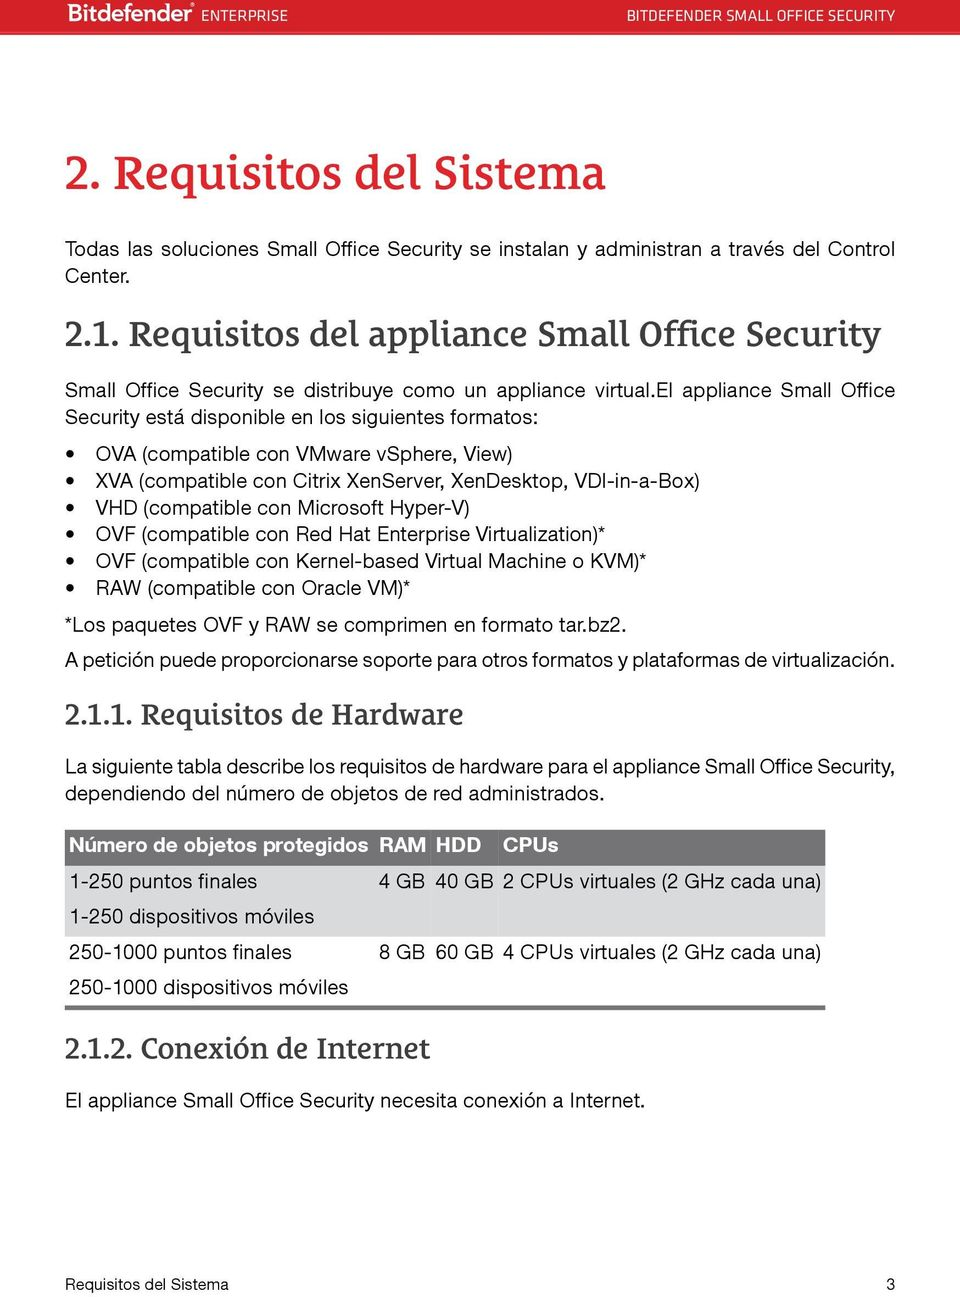 el appliance Small Office Security está disponible en los siguientes formatos: OVA (compatible con VMware vsphere, View) XVA (compatible con Citrix XenServer, XenDesktop, VDI-in-a-Box) VHD